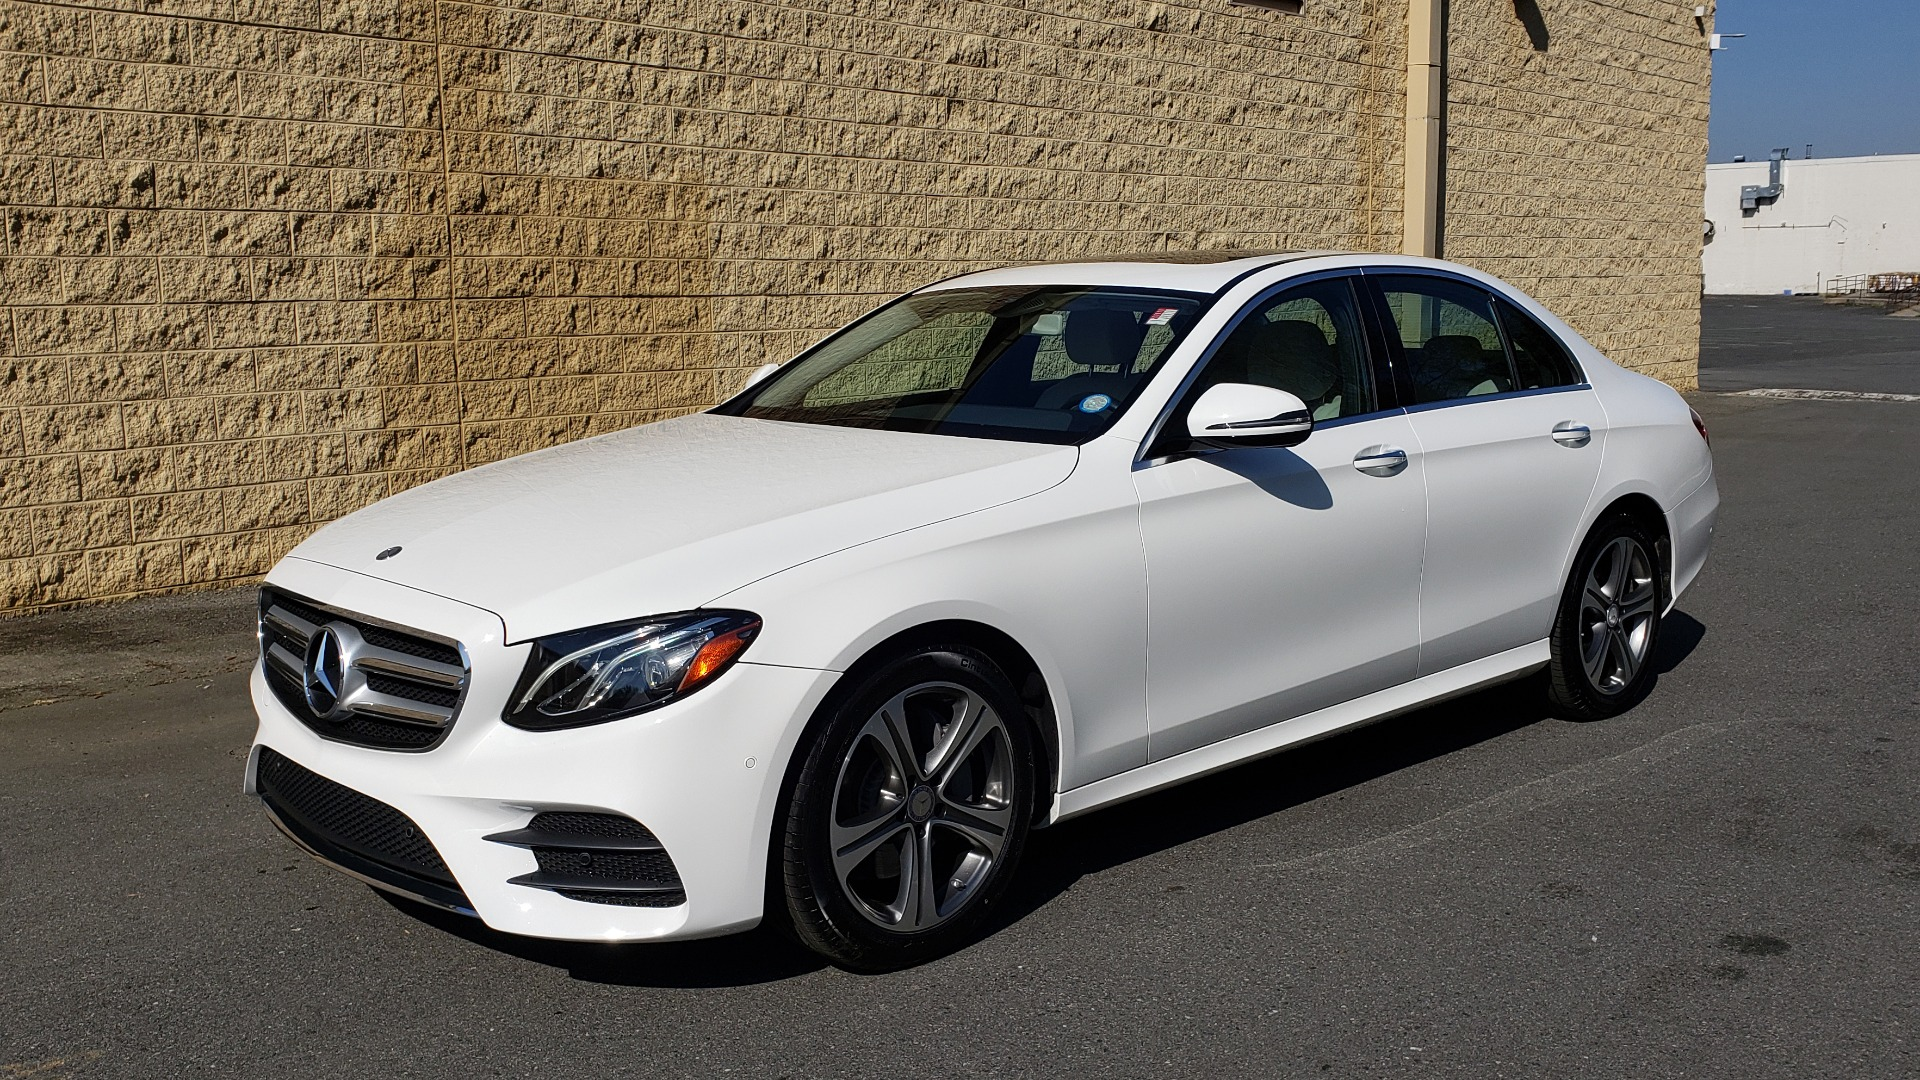 Used 2017 Mercedes-Benz E-Class E 300 PREMIUM / RWD / NAV / SNF / PARKING PILOT / REARVIEW / BURMESTER for sale Sold at Formula Imports in Charlotte NC 28227 1